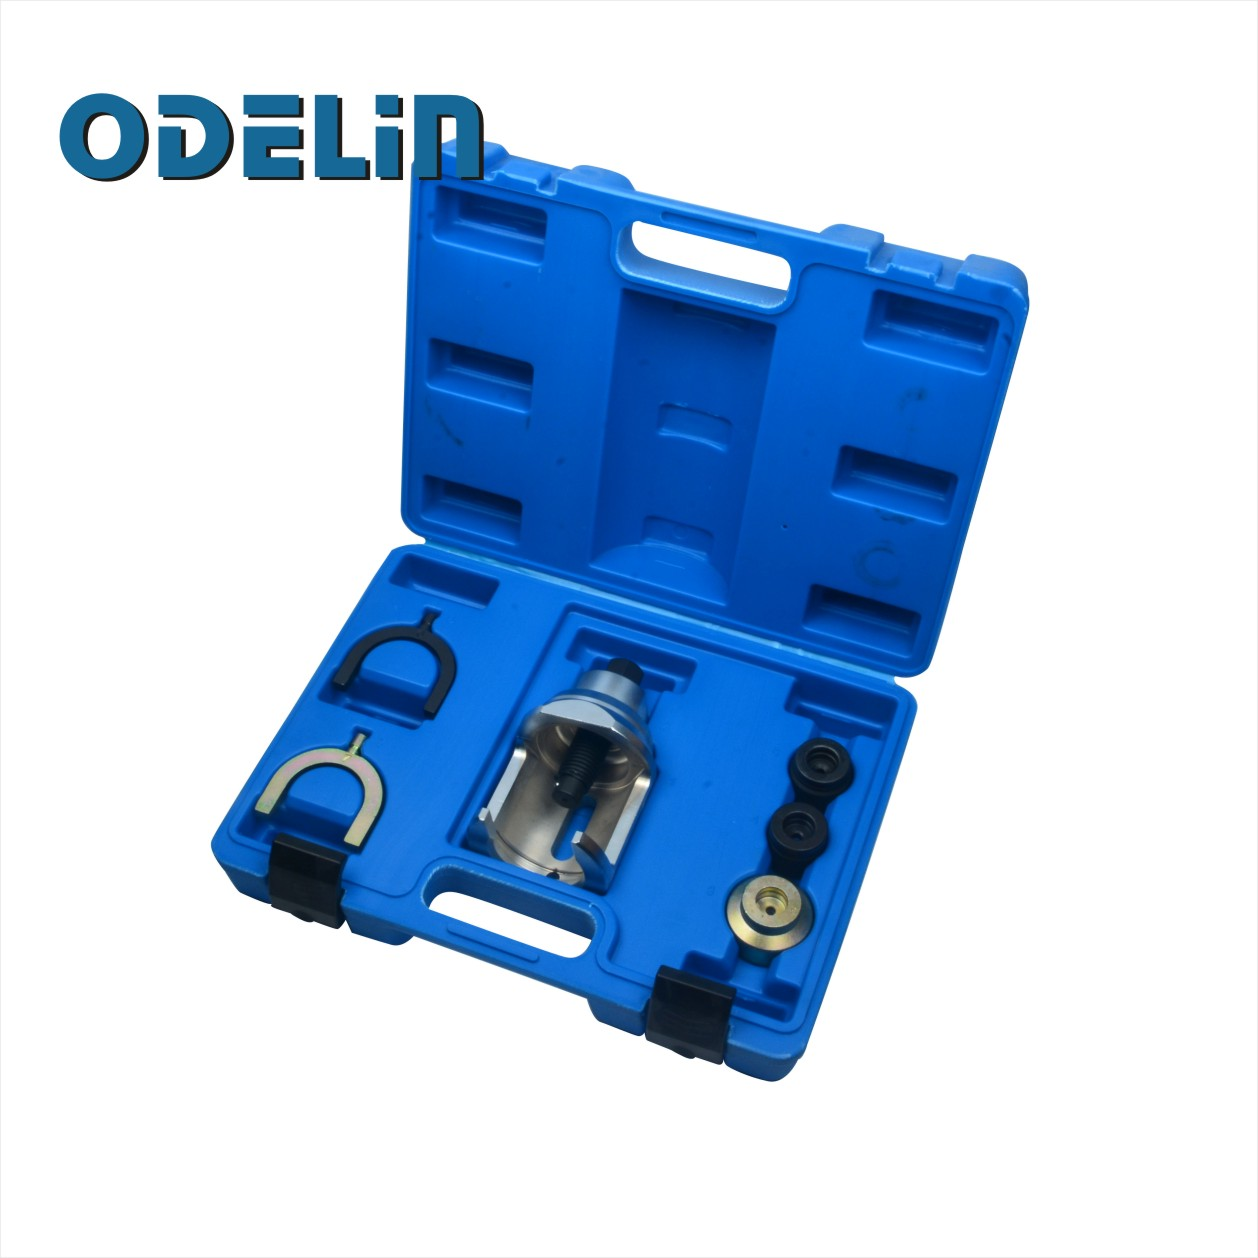 Upper Ball Joint Front Axle In Situ Removal Install Tool Transporter For VW T4 09 vertical single joint potentiometer evu jfqfk 4g54 50kg 18 axle [with midpoint]